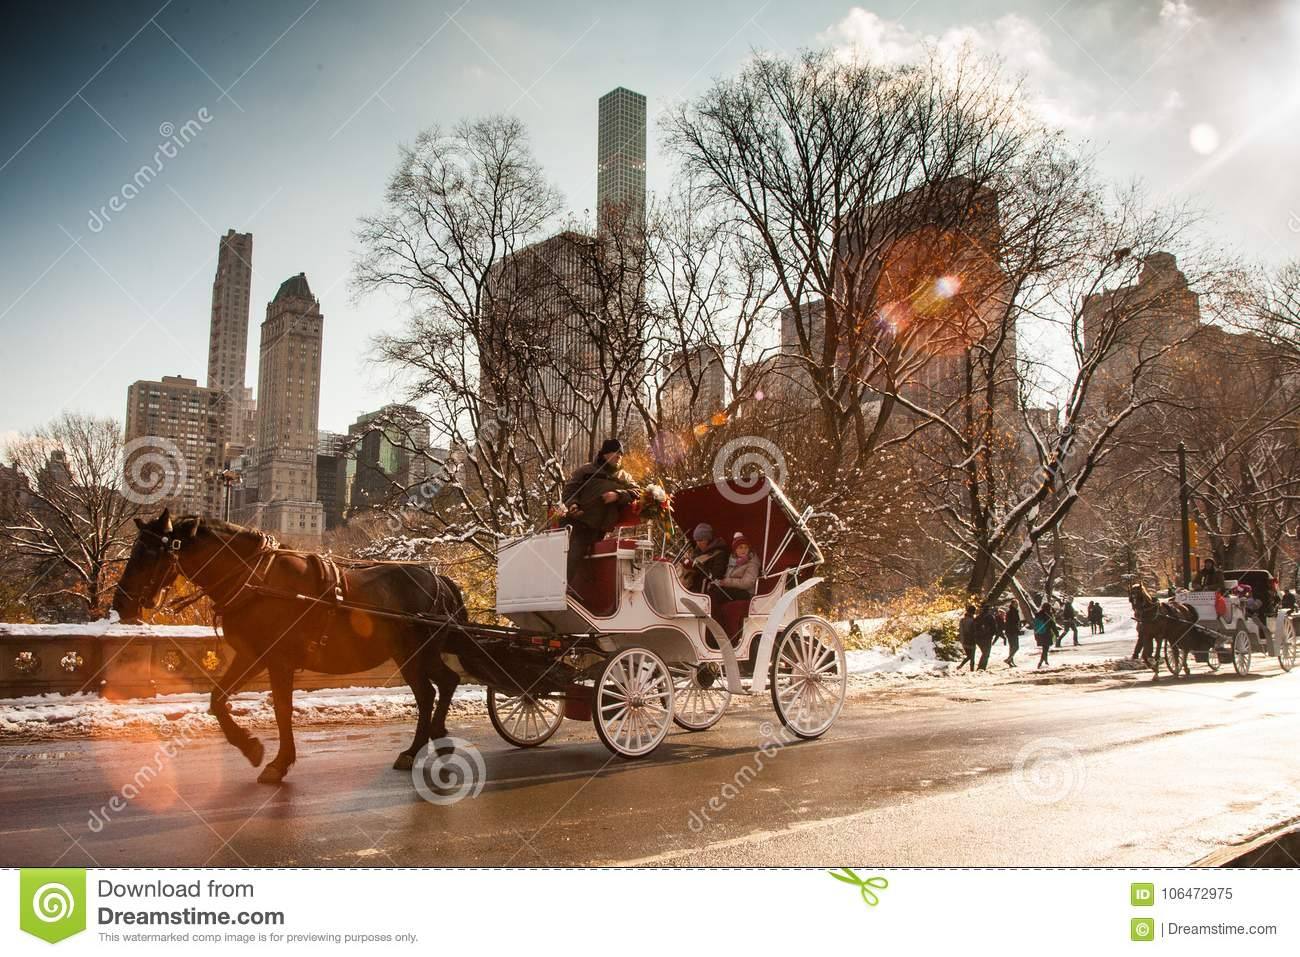 Horse Carriage Ride Central Park Nyc Editorial Image Image Of Christmas Period 106472975